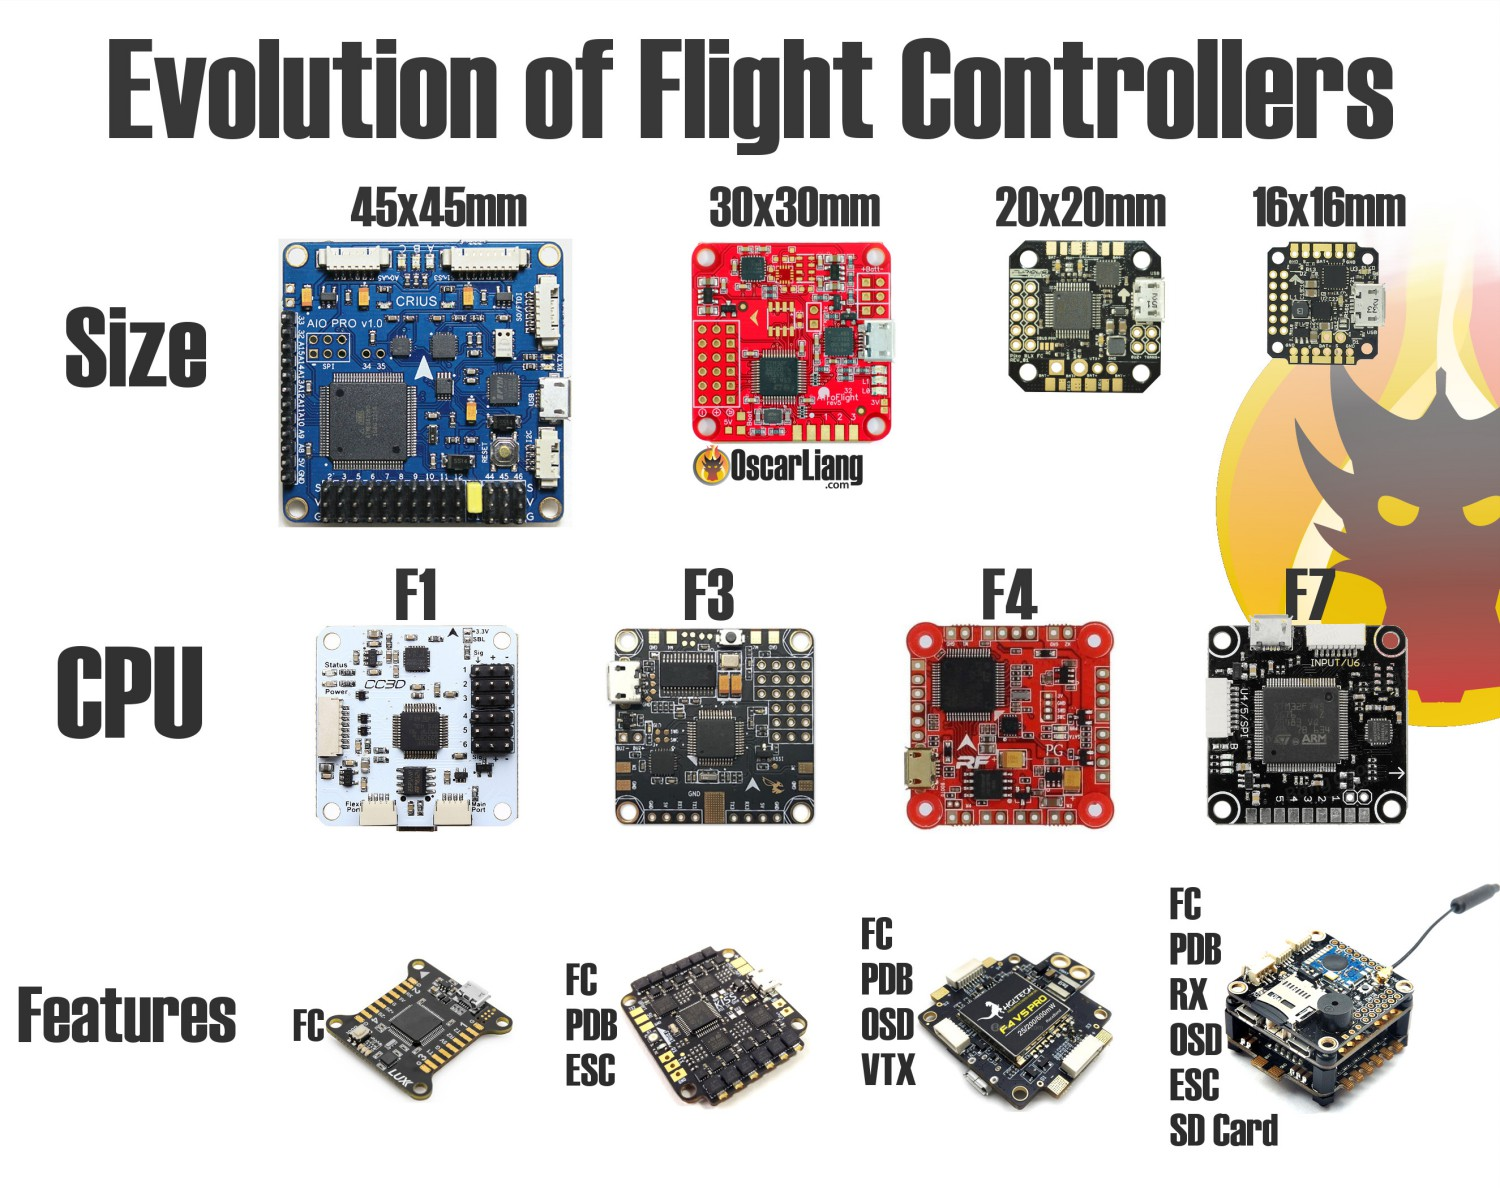 flight controller sizes, MCU and features